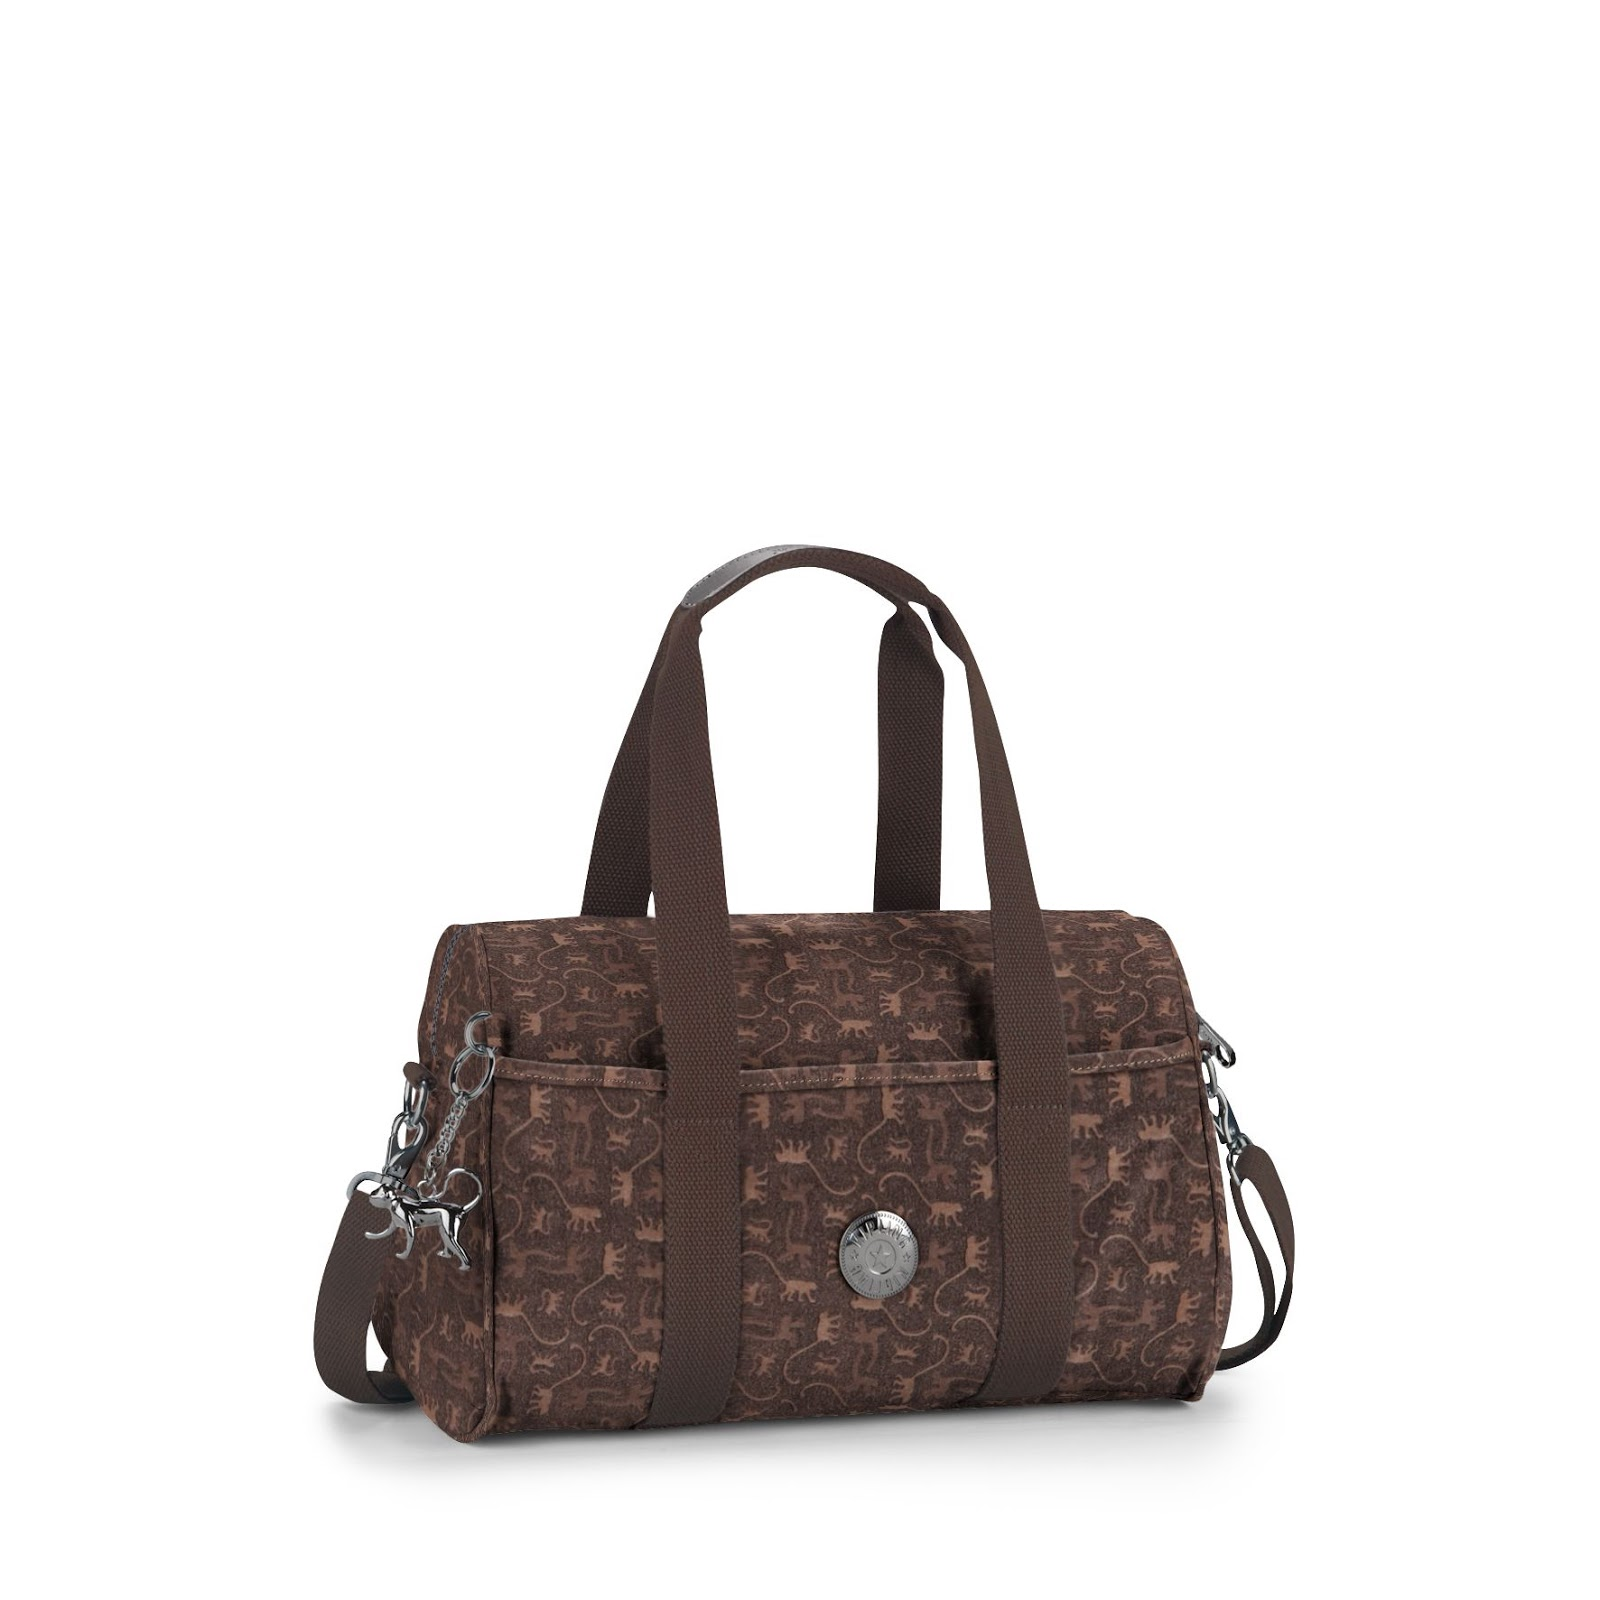 Find kipling bags at ShopStyle Brands: Brunello Cucinelli, Chanel, Manolo Blahnik, Monique Lhuillier, Prada.